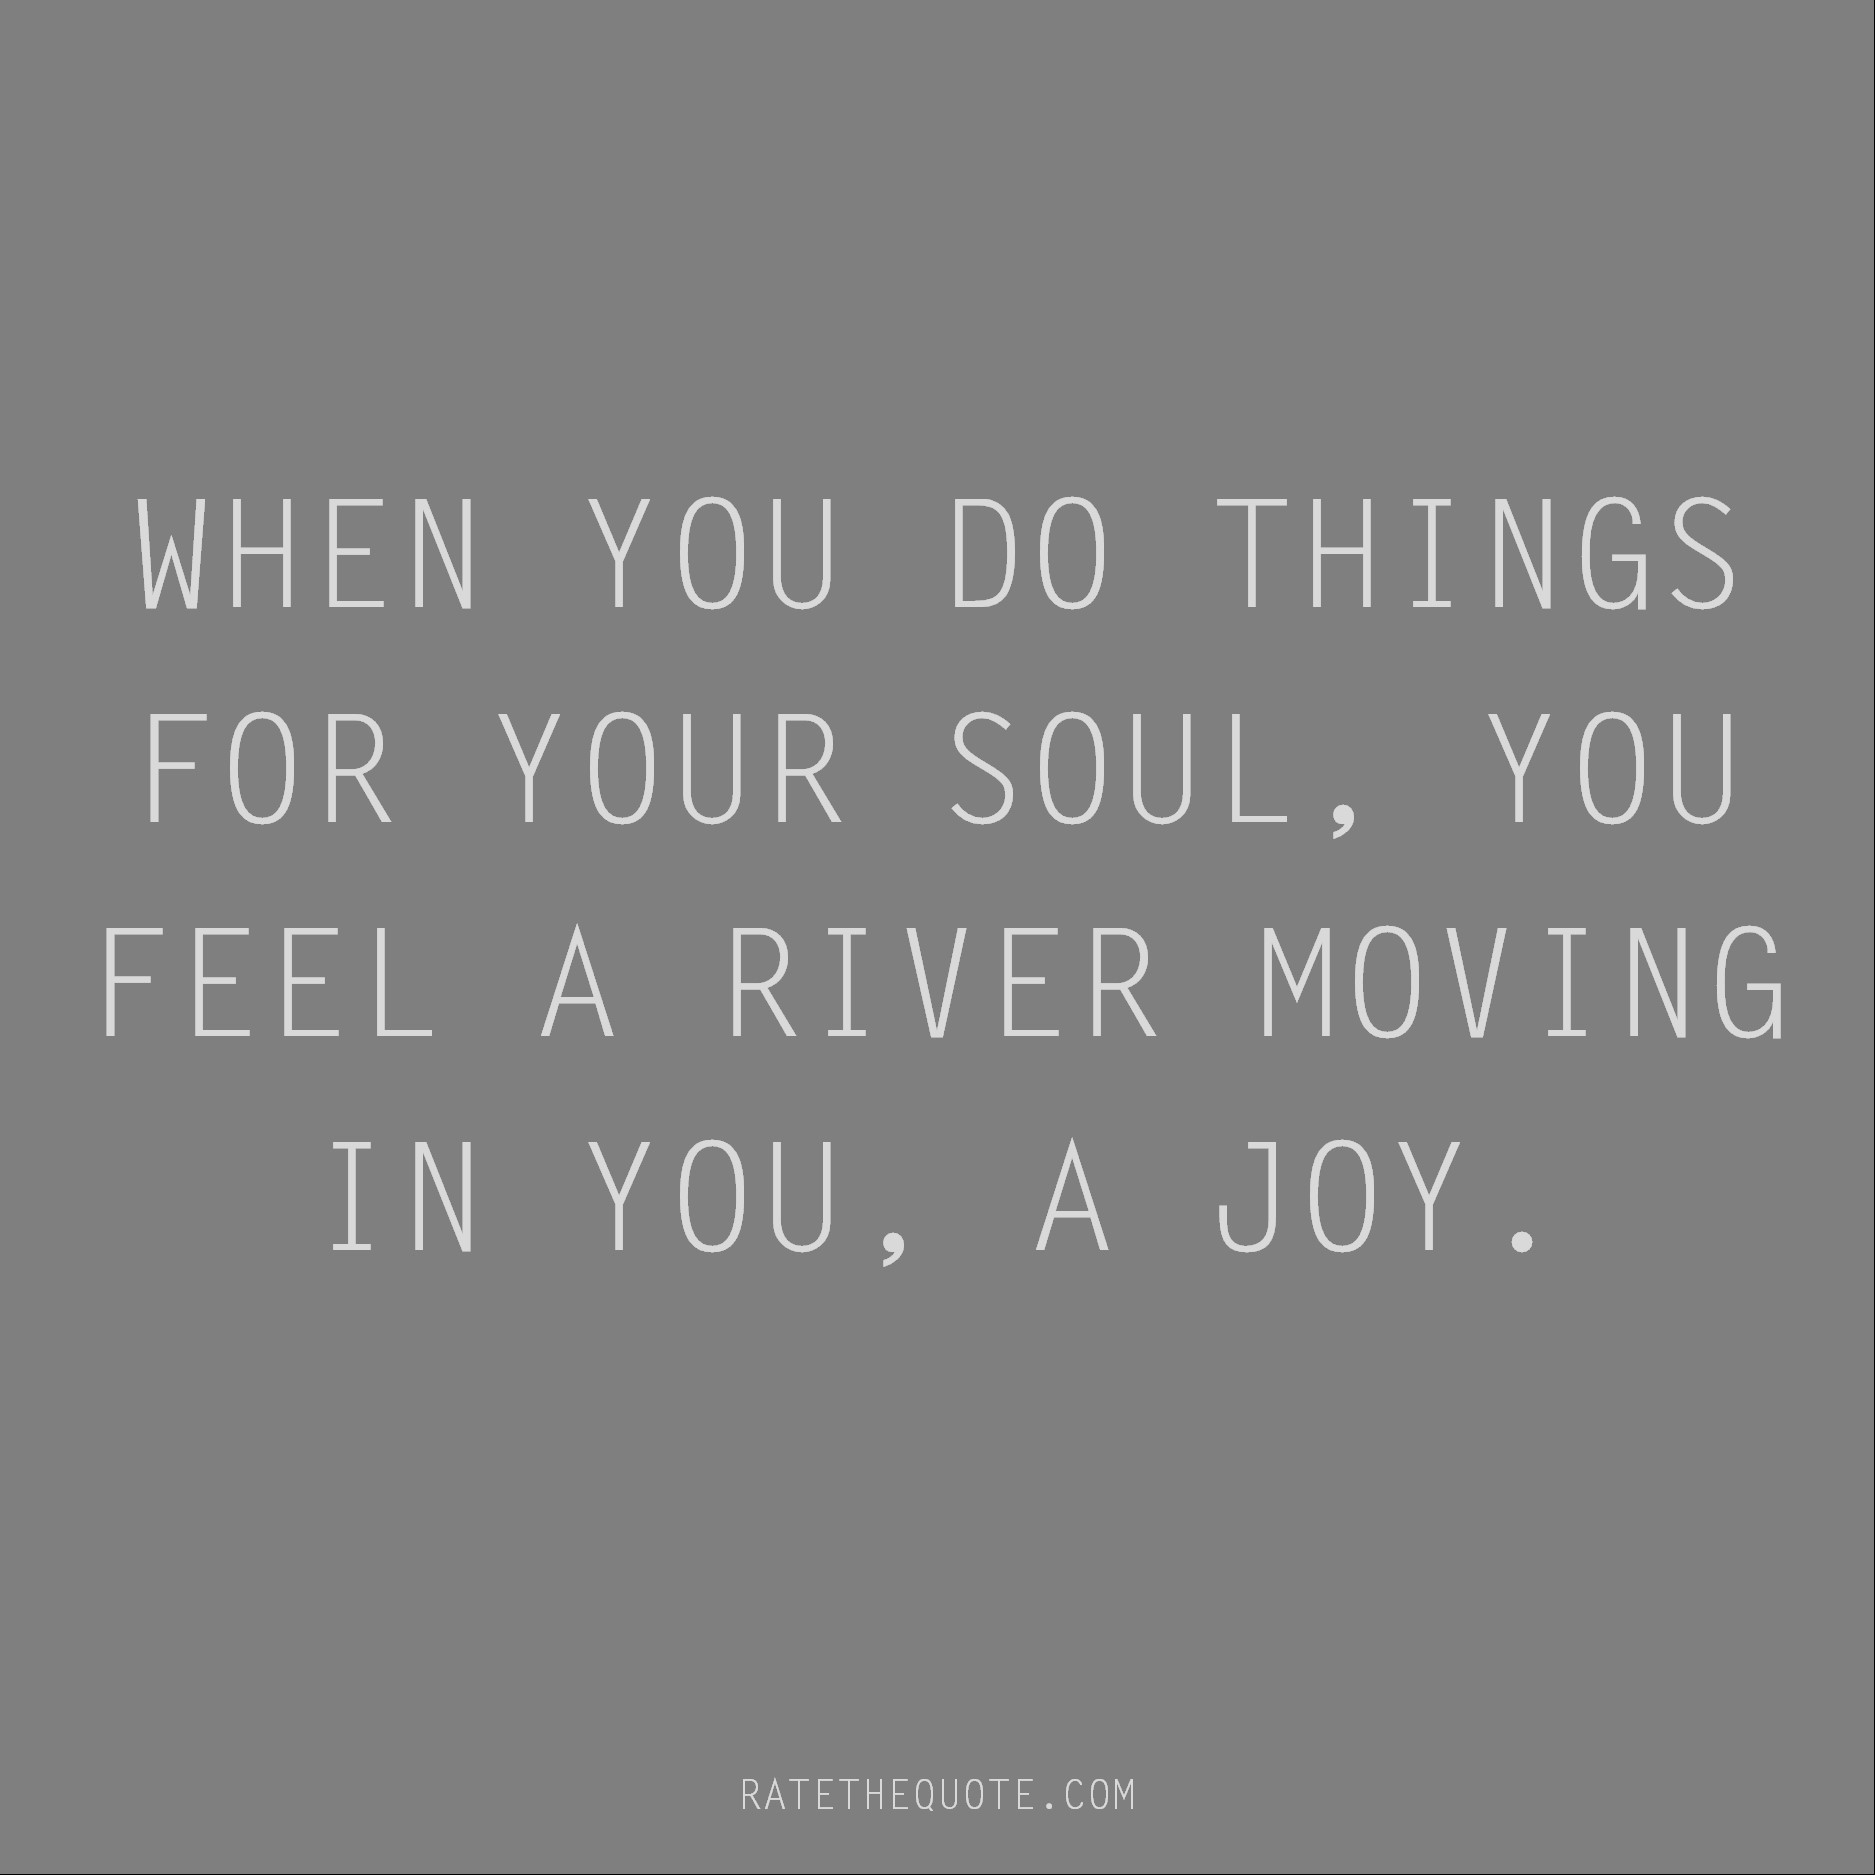 Rumi Quote When you do things for your soul, you feel a river moving in you, a joy.